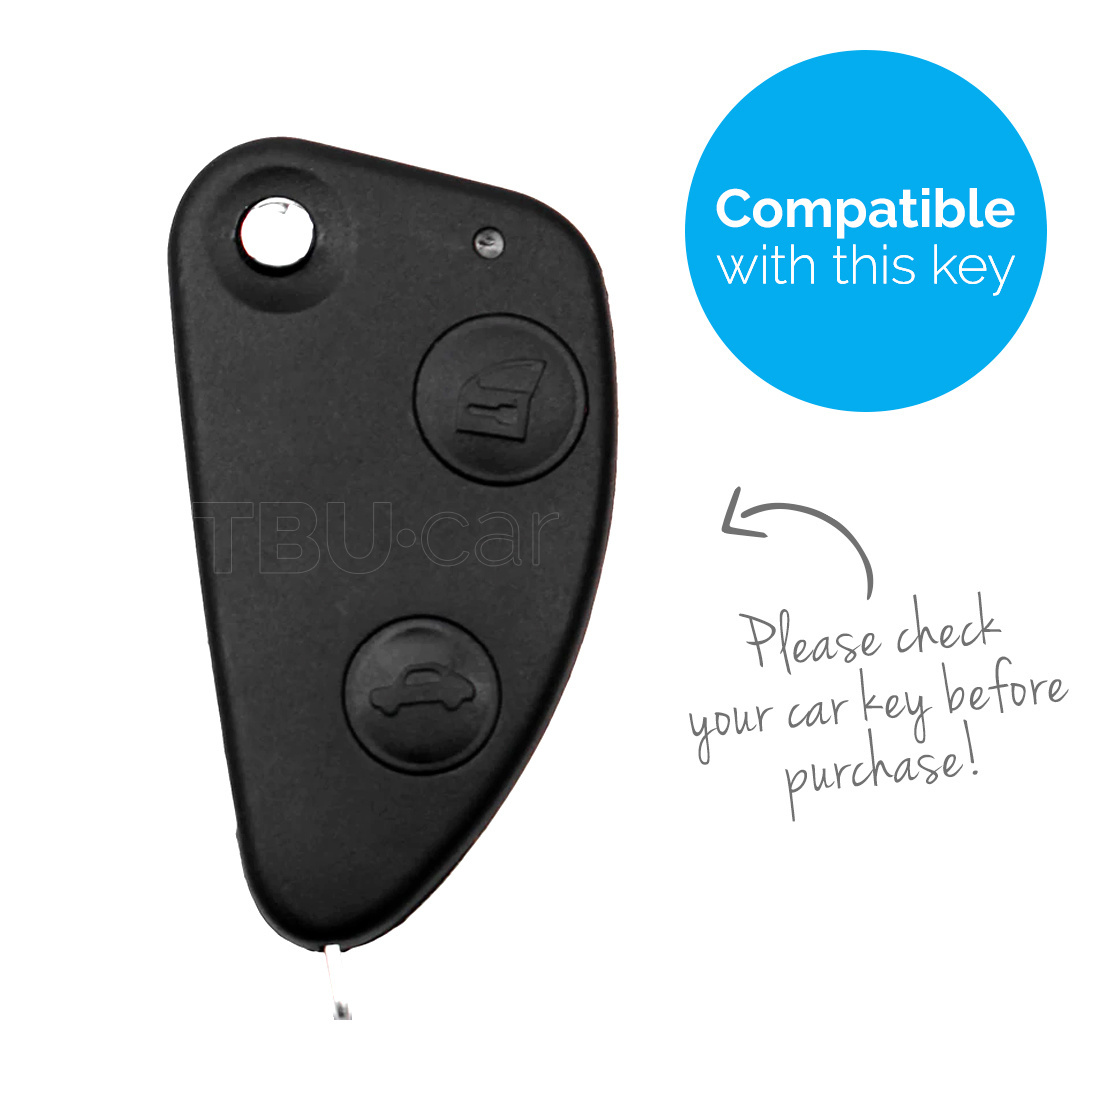 TBU car TBU car Car key cover compatible with Alfa Romeo - Silicone Protective Remote Key Shell - FOB Case Cover - Glow in the Dark